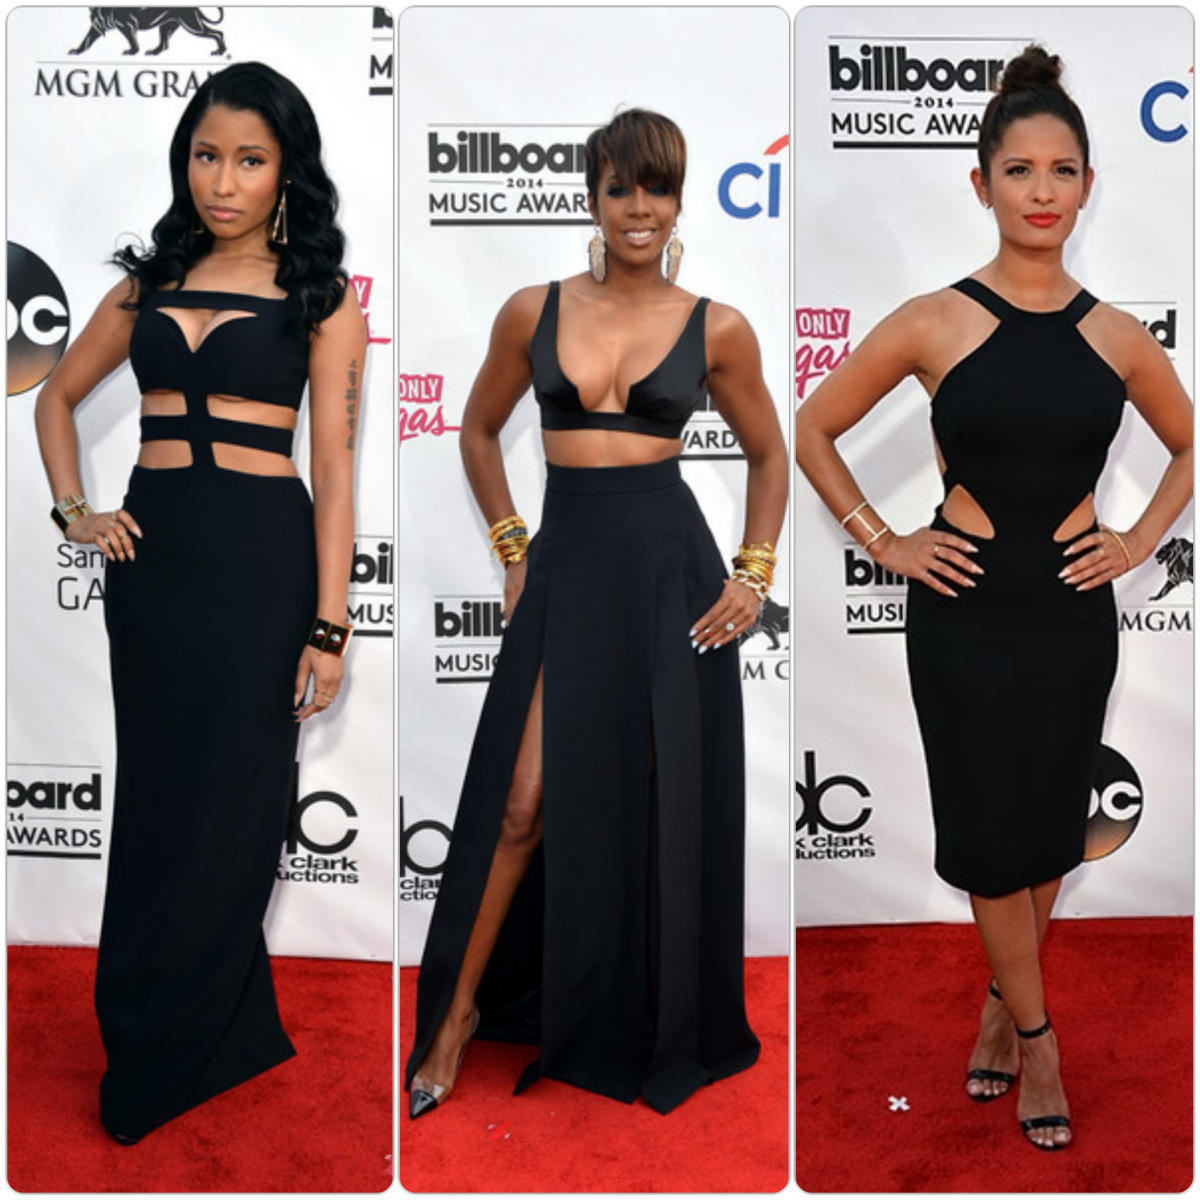 Nicki-Minaj-Kelly-Rowland-Rocsi-Diaz-Billboard-2014